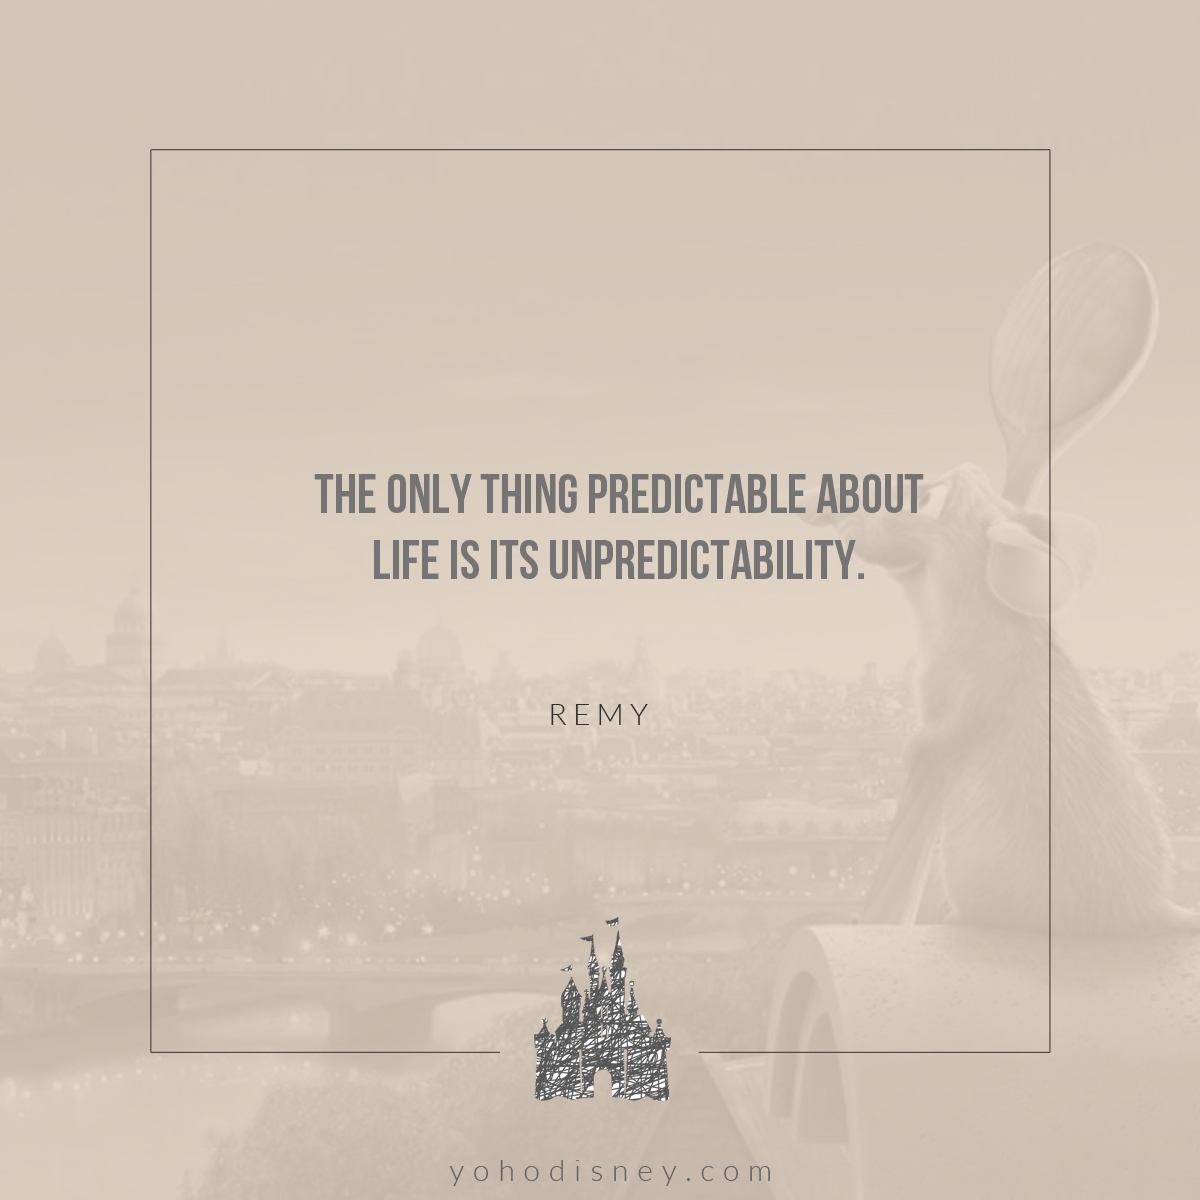 Remy Quote // Disney's Ratatouille